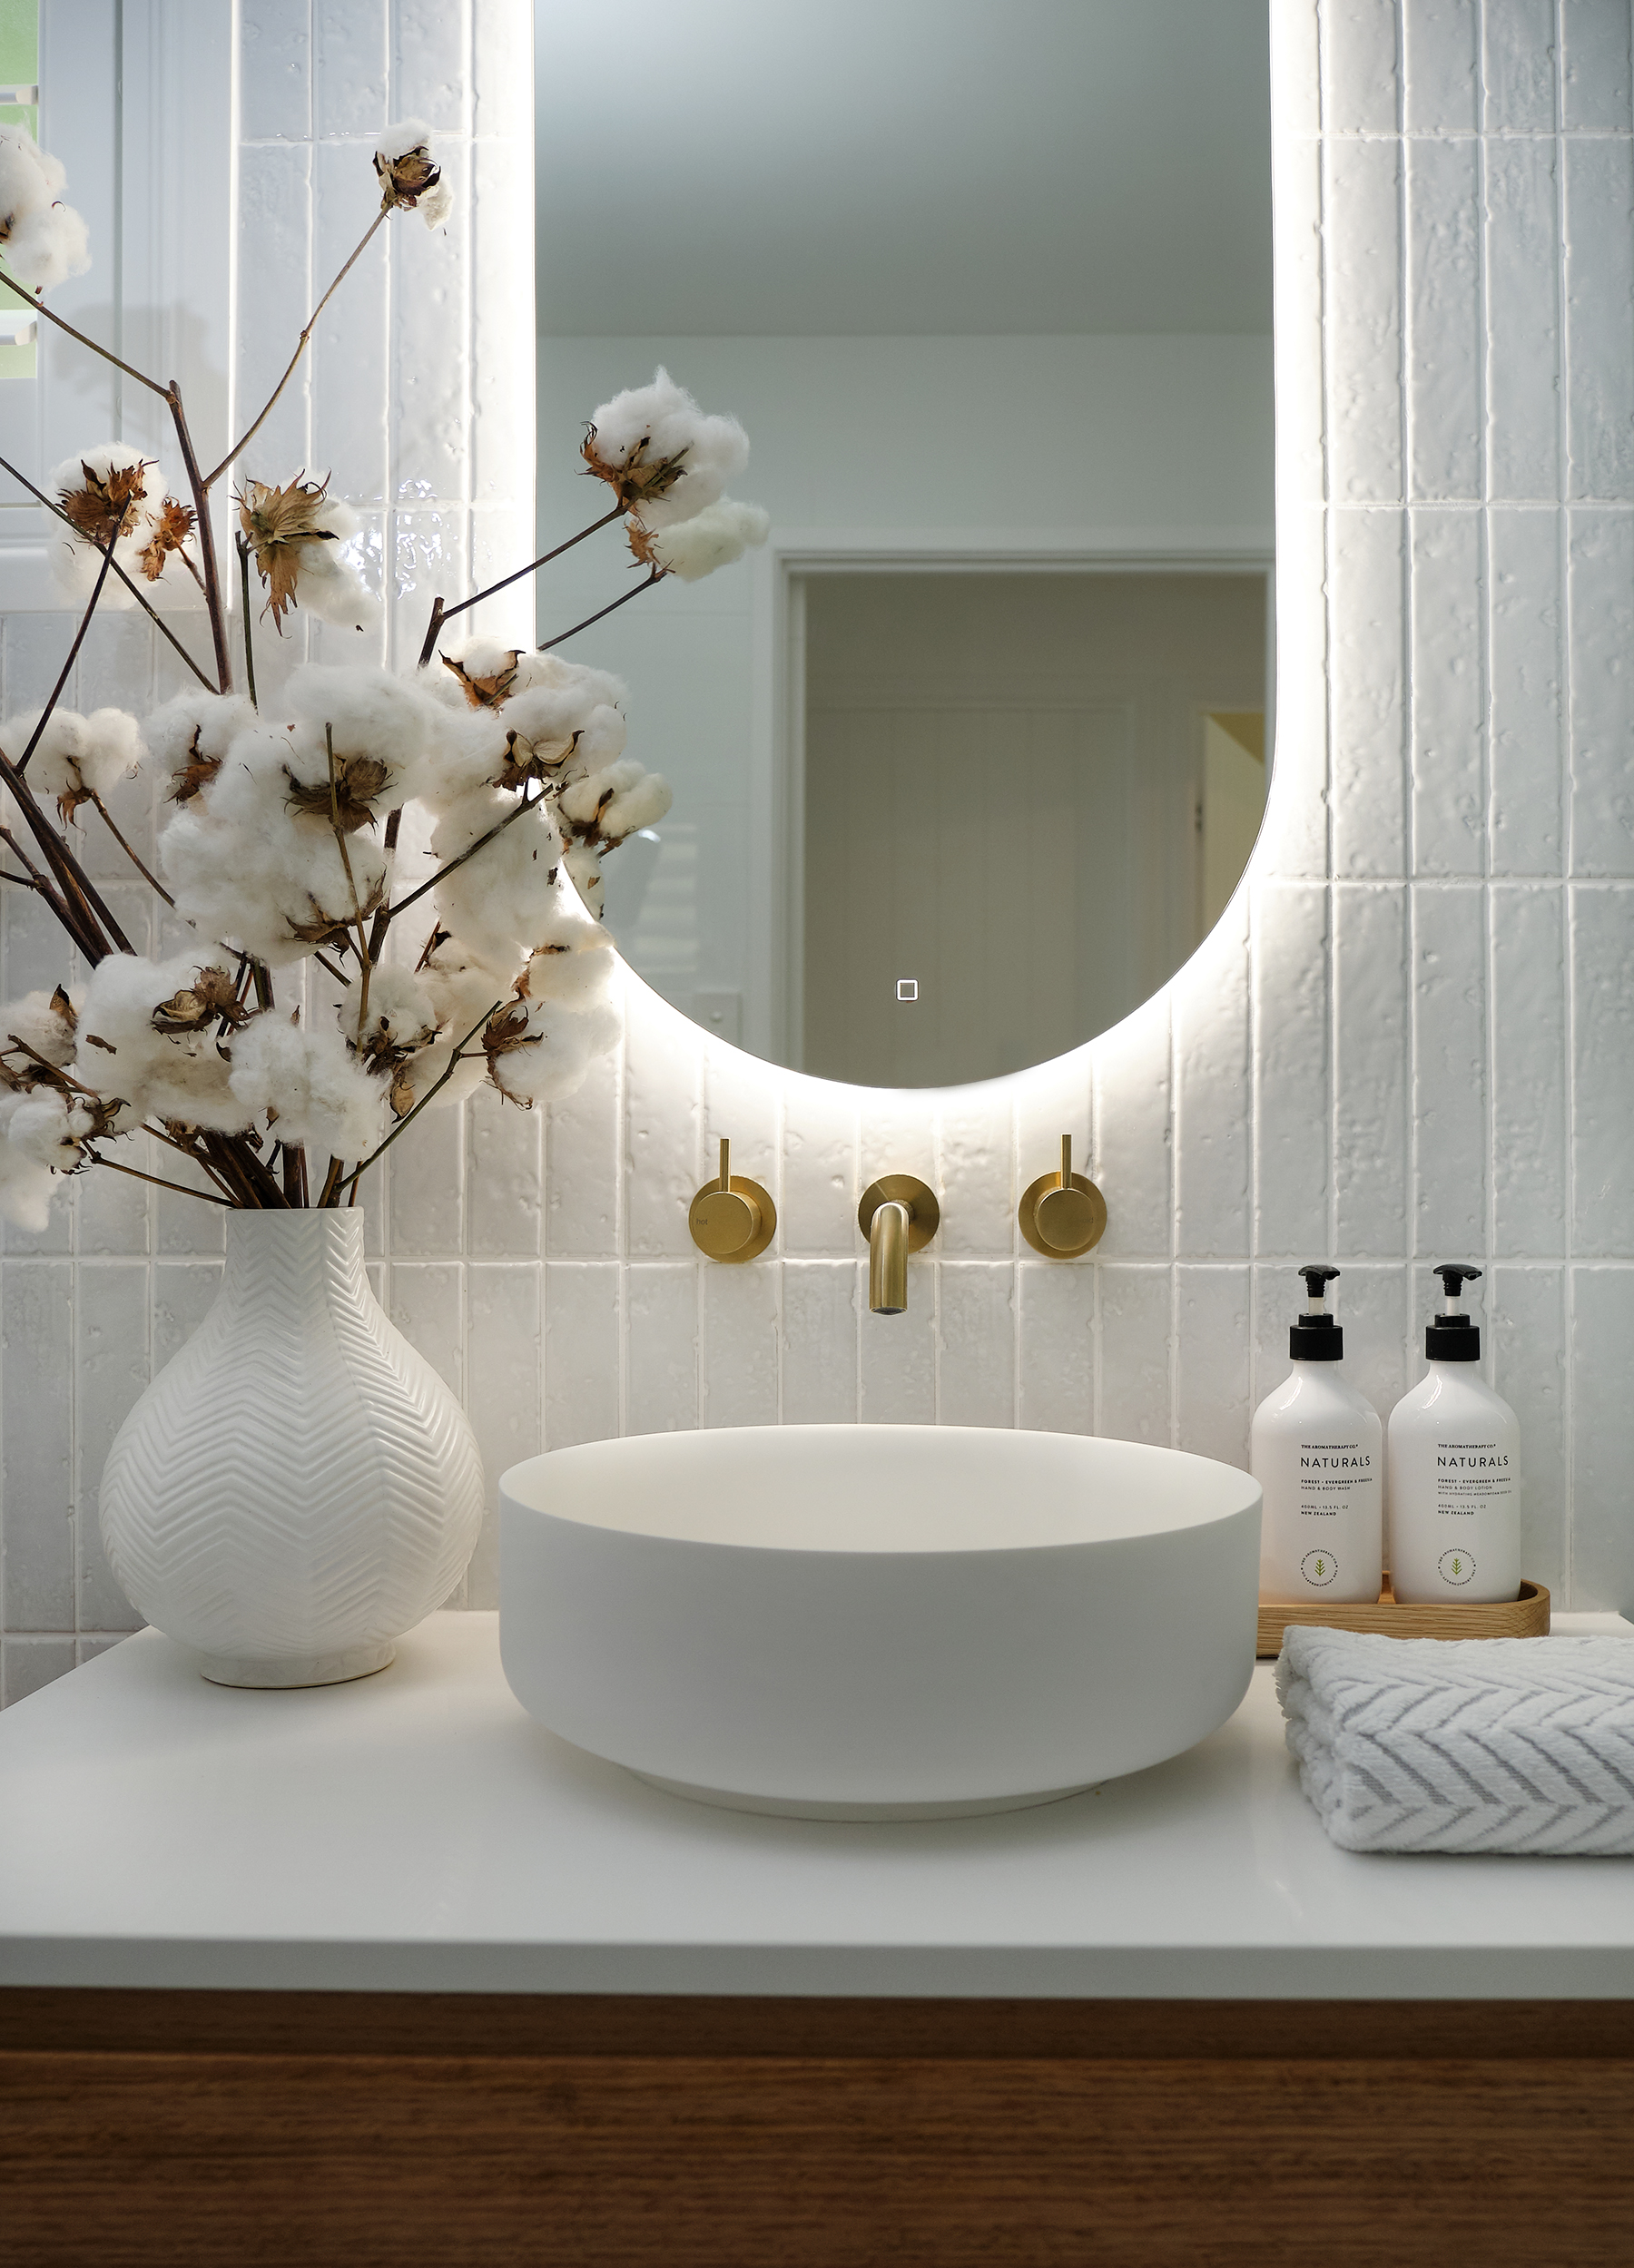 web_Adore_Home_Magazine_Bathroom_Reno_Loni_Parker6.jpg